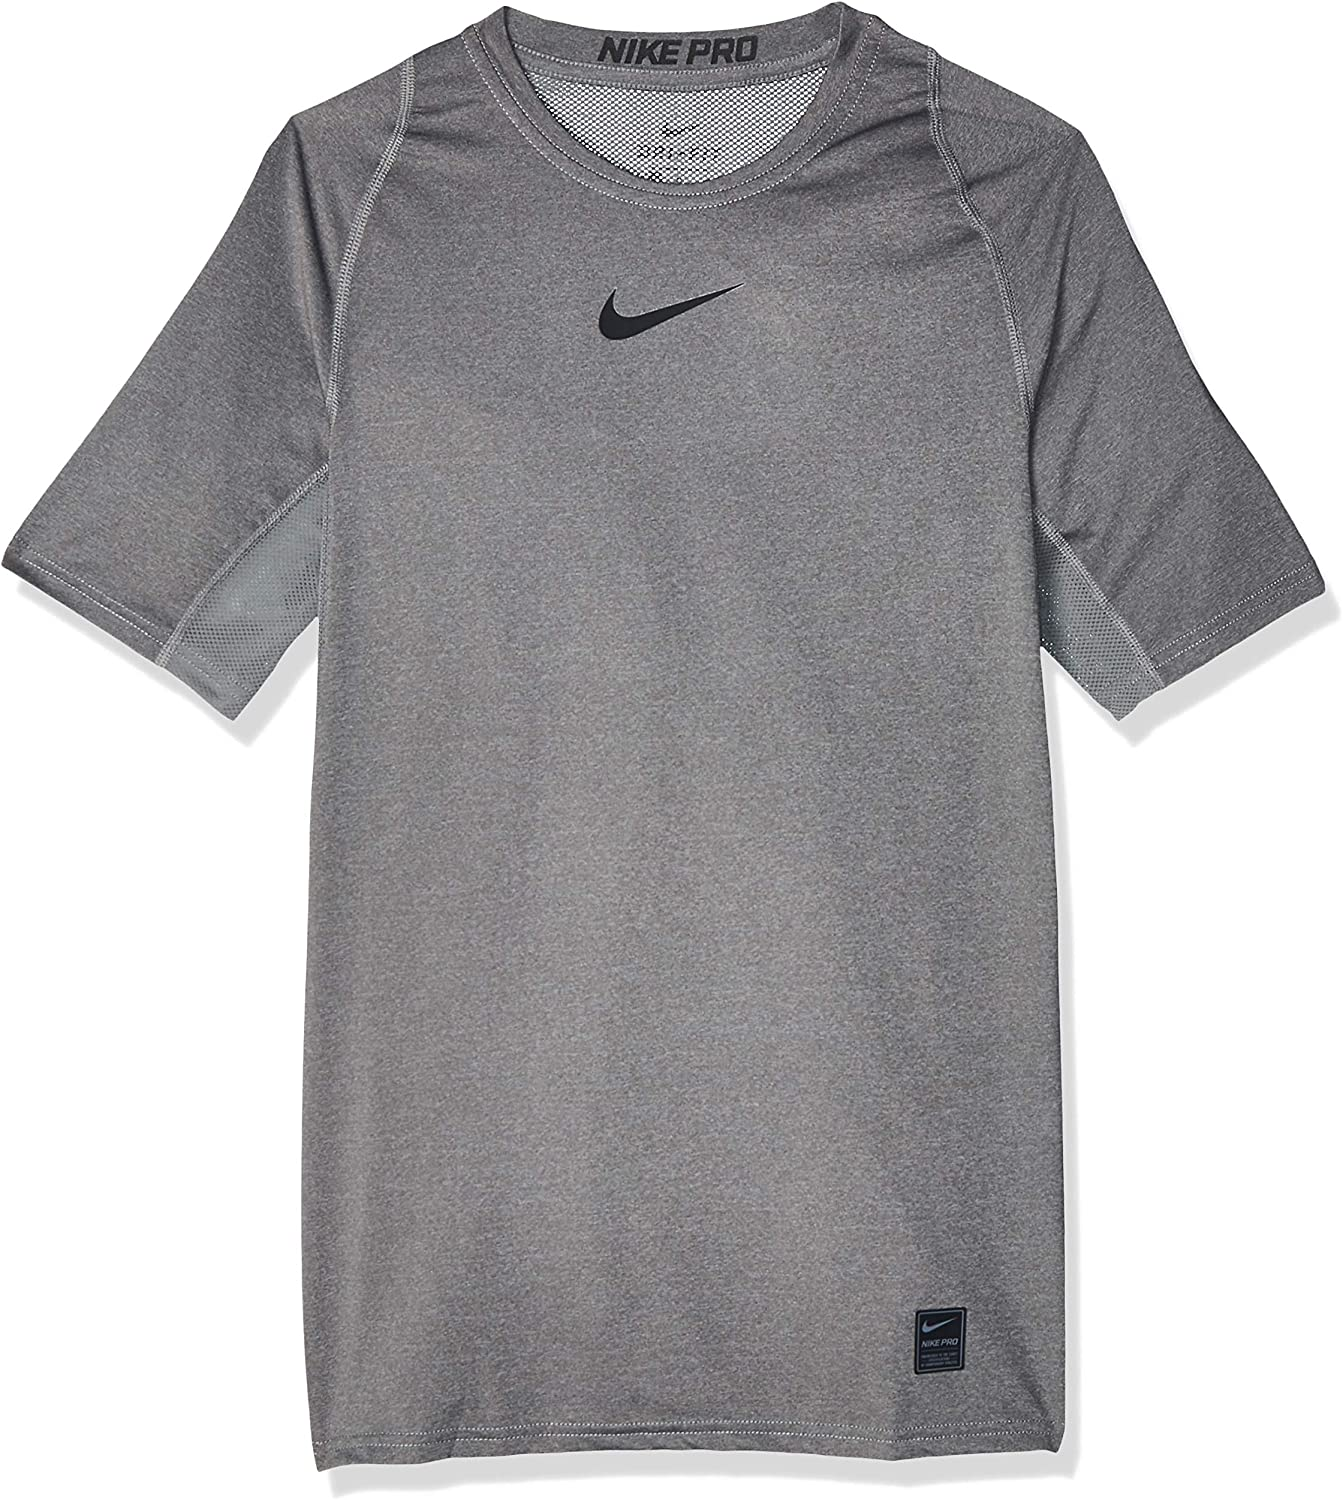 Nike Pro Men's Short-Sleeve Training Top (Carbon Heather, XL)